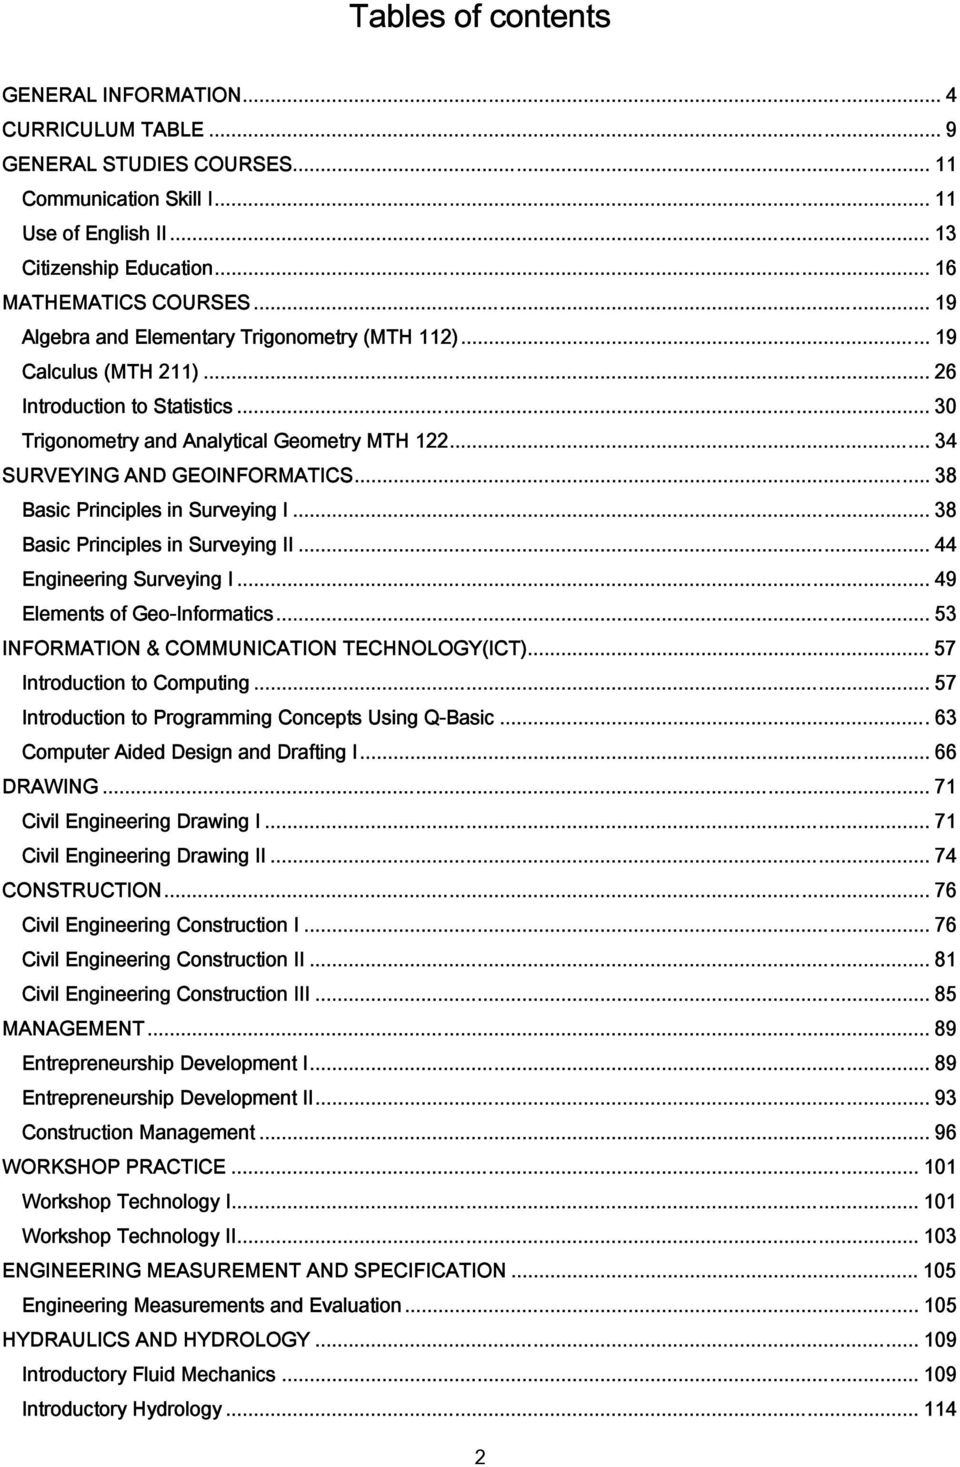 .. 38 Basic Principles in Surveying I... 38 Basic Principles in Surveying II... 44 Engineering Surveying I... 49 Elements of Geo-Informatics... 53 INFORMATION & COMMUNICATION TECHNOLOGY(ICT).